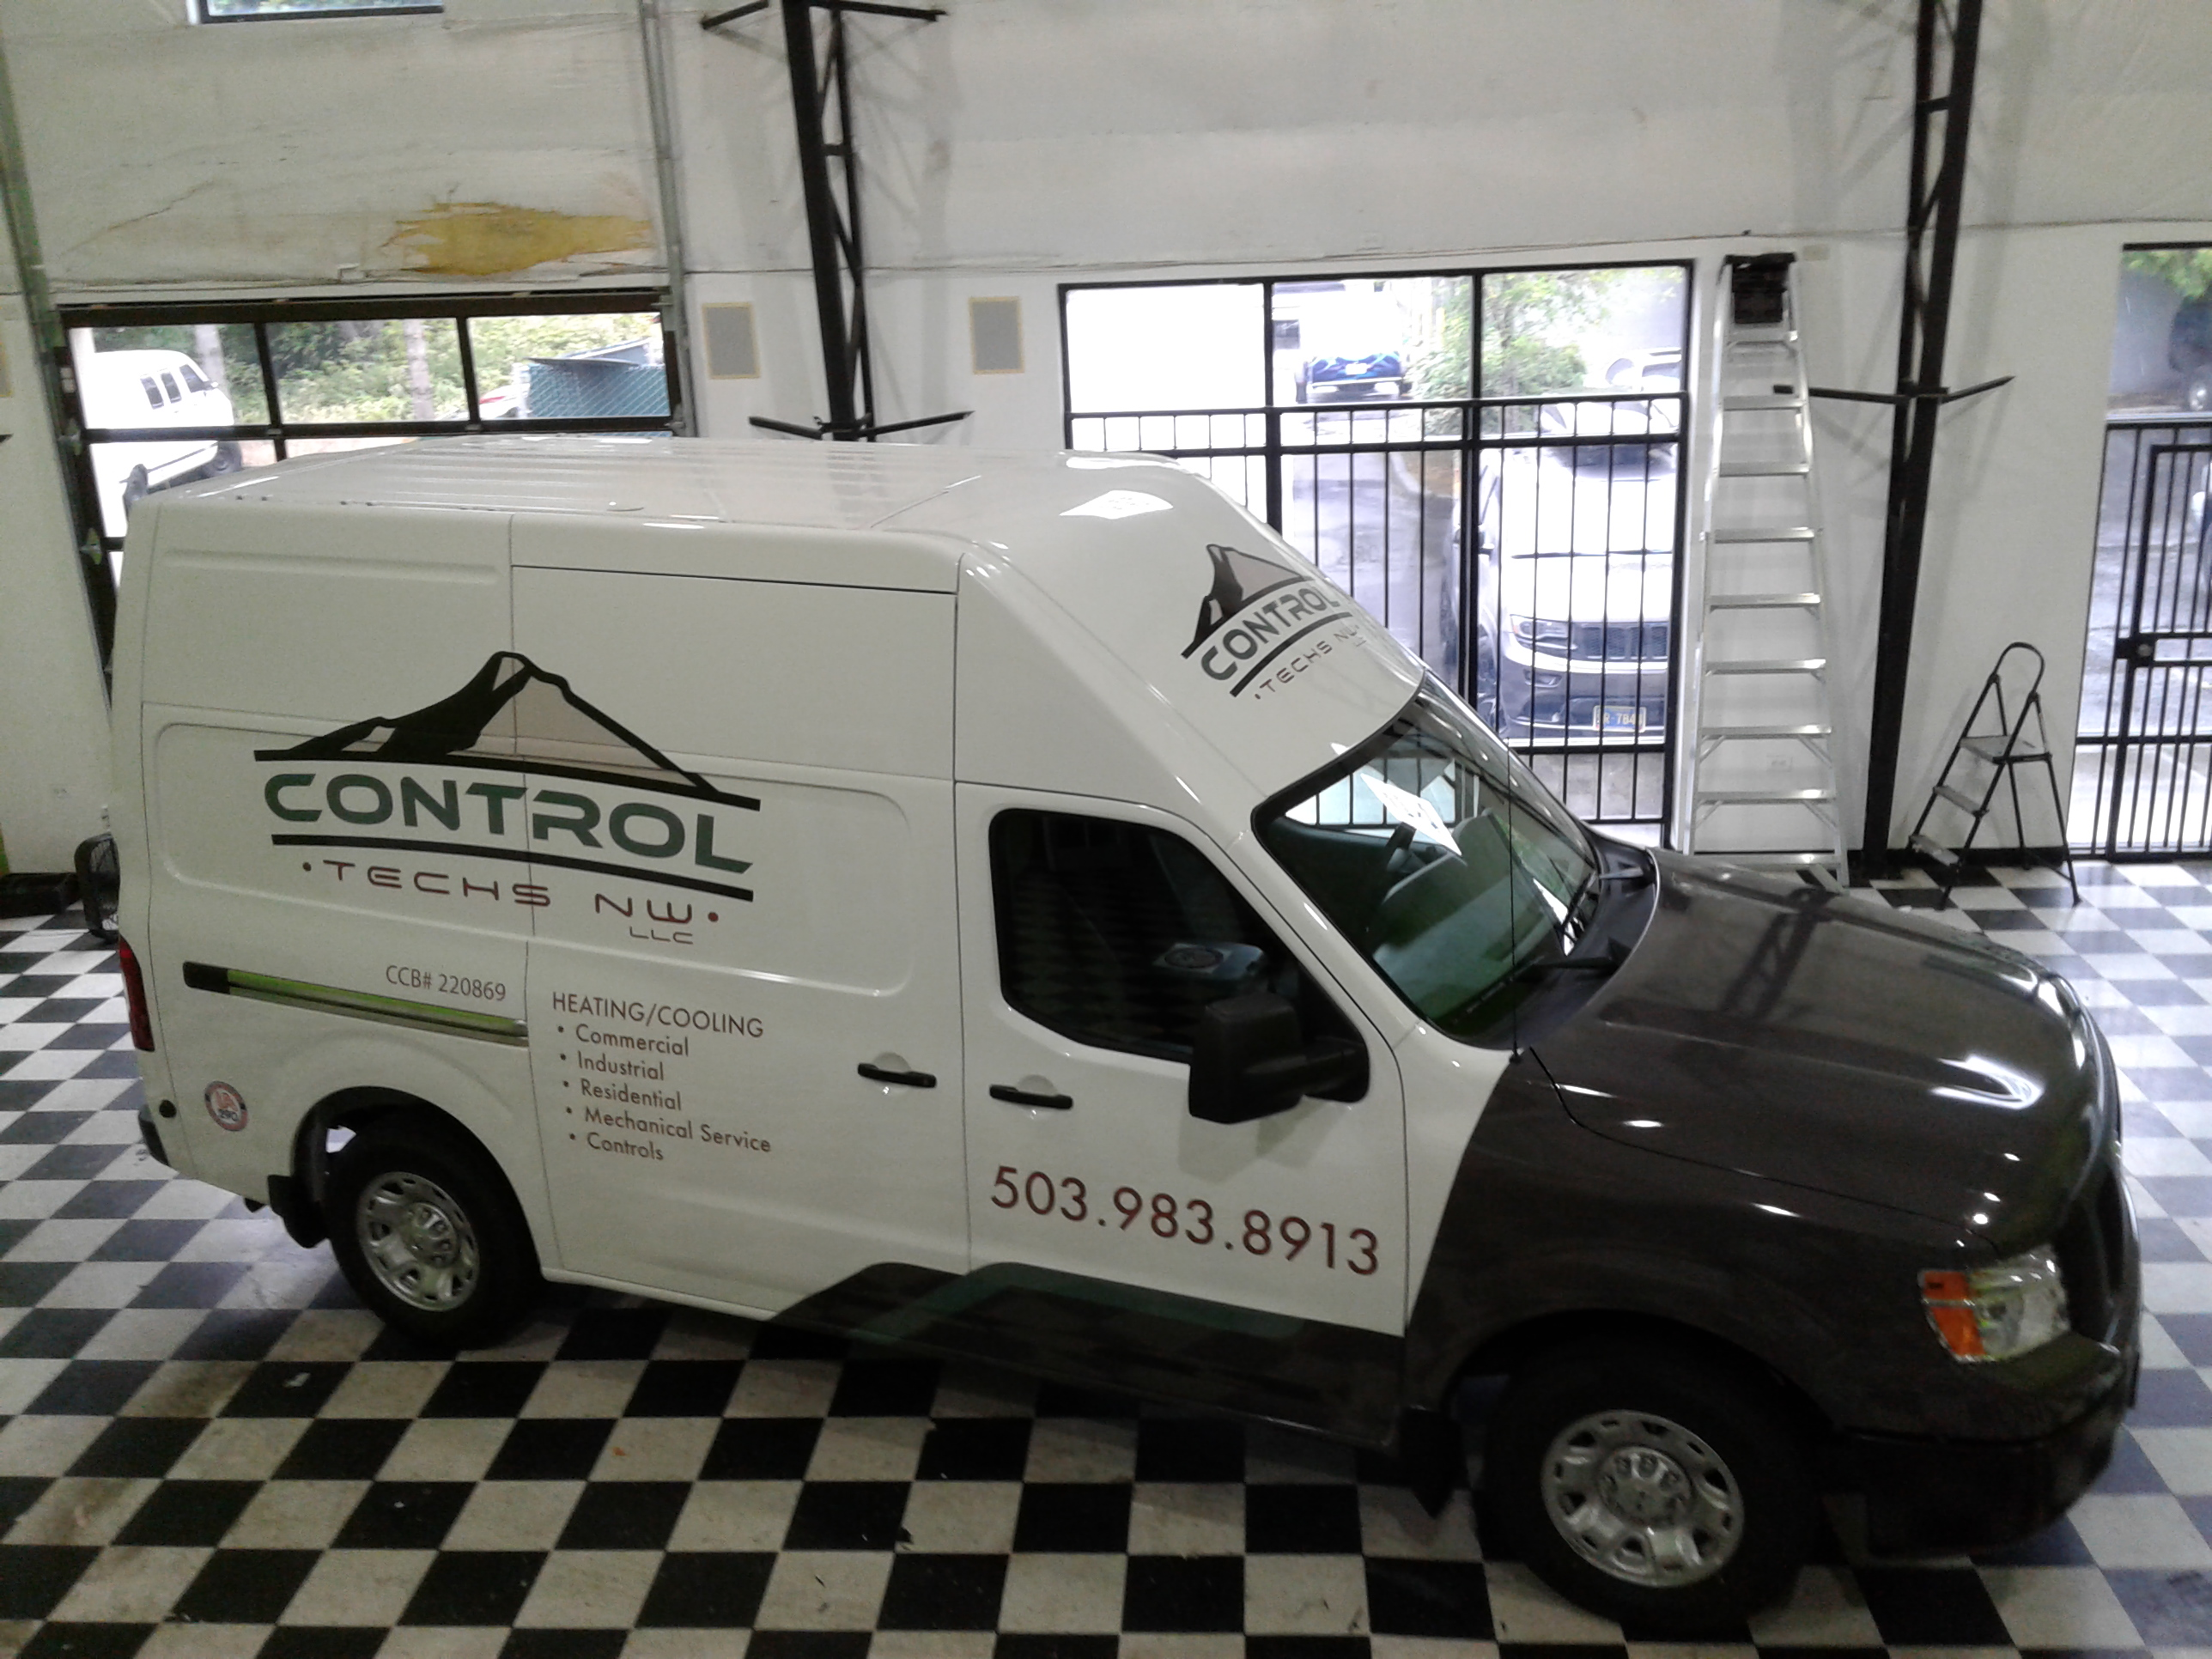 control techs NW work van